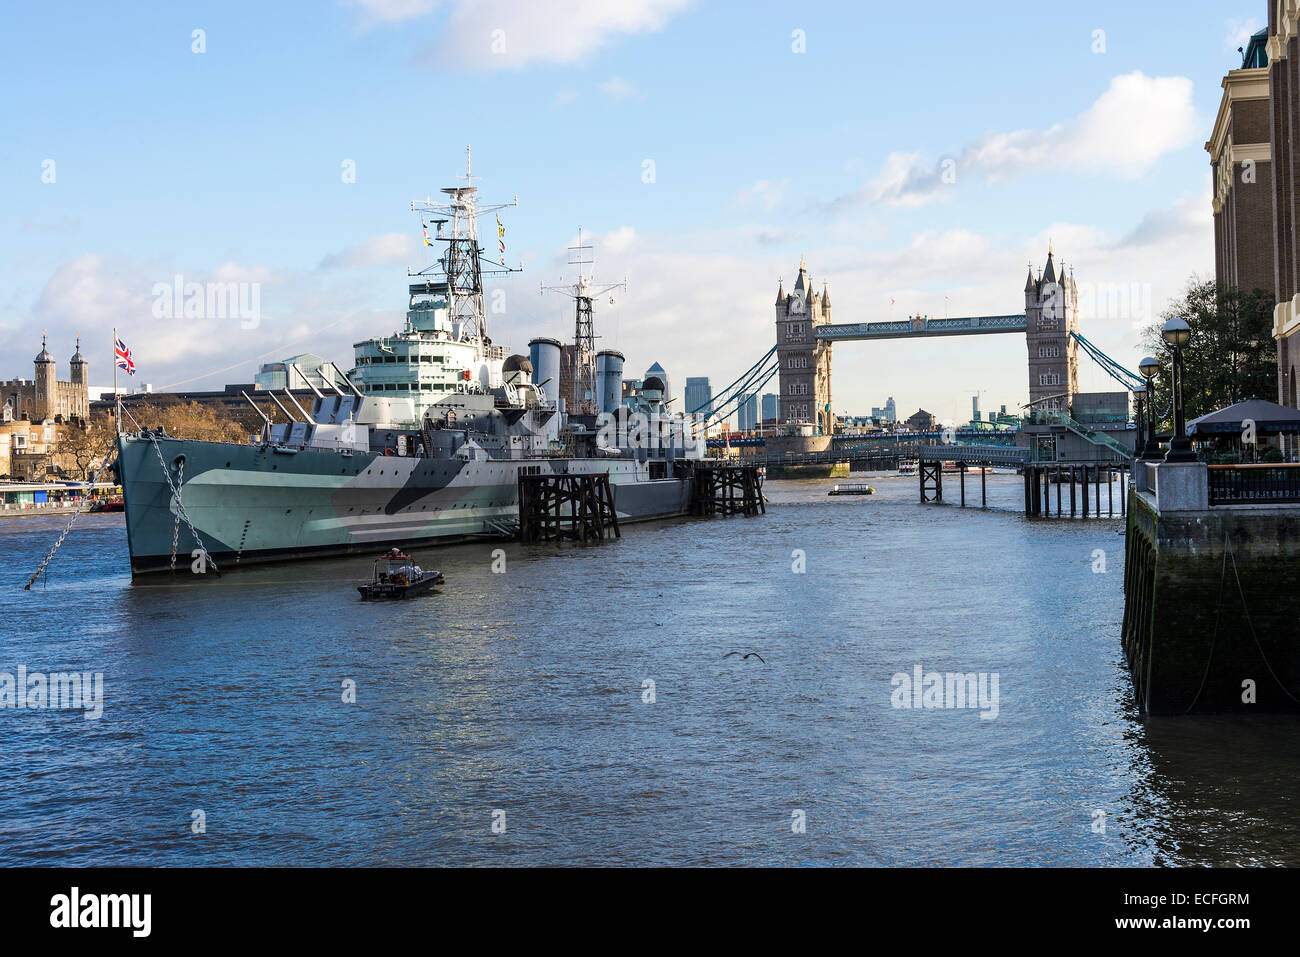 The Former Royal Navy Cruiser HMS Belfast Moored in River Thames with Tower Bridge in Background London England Stock Photo